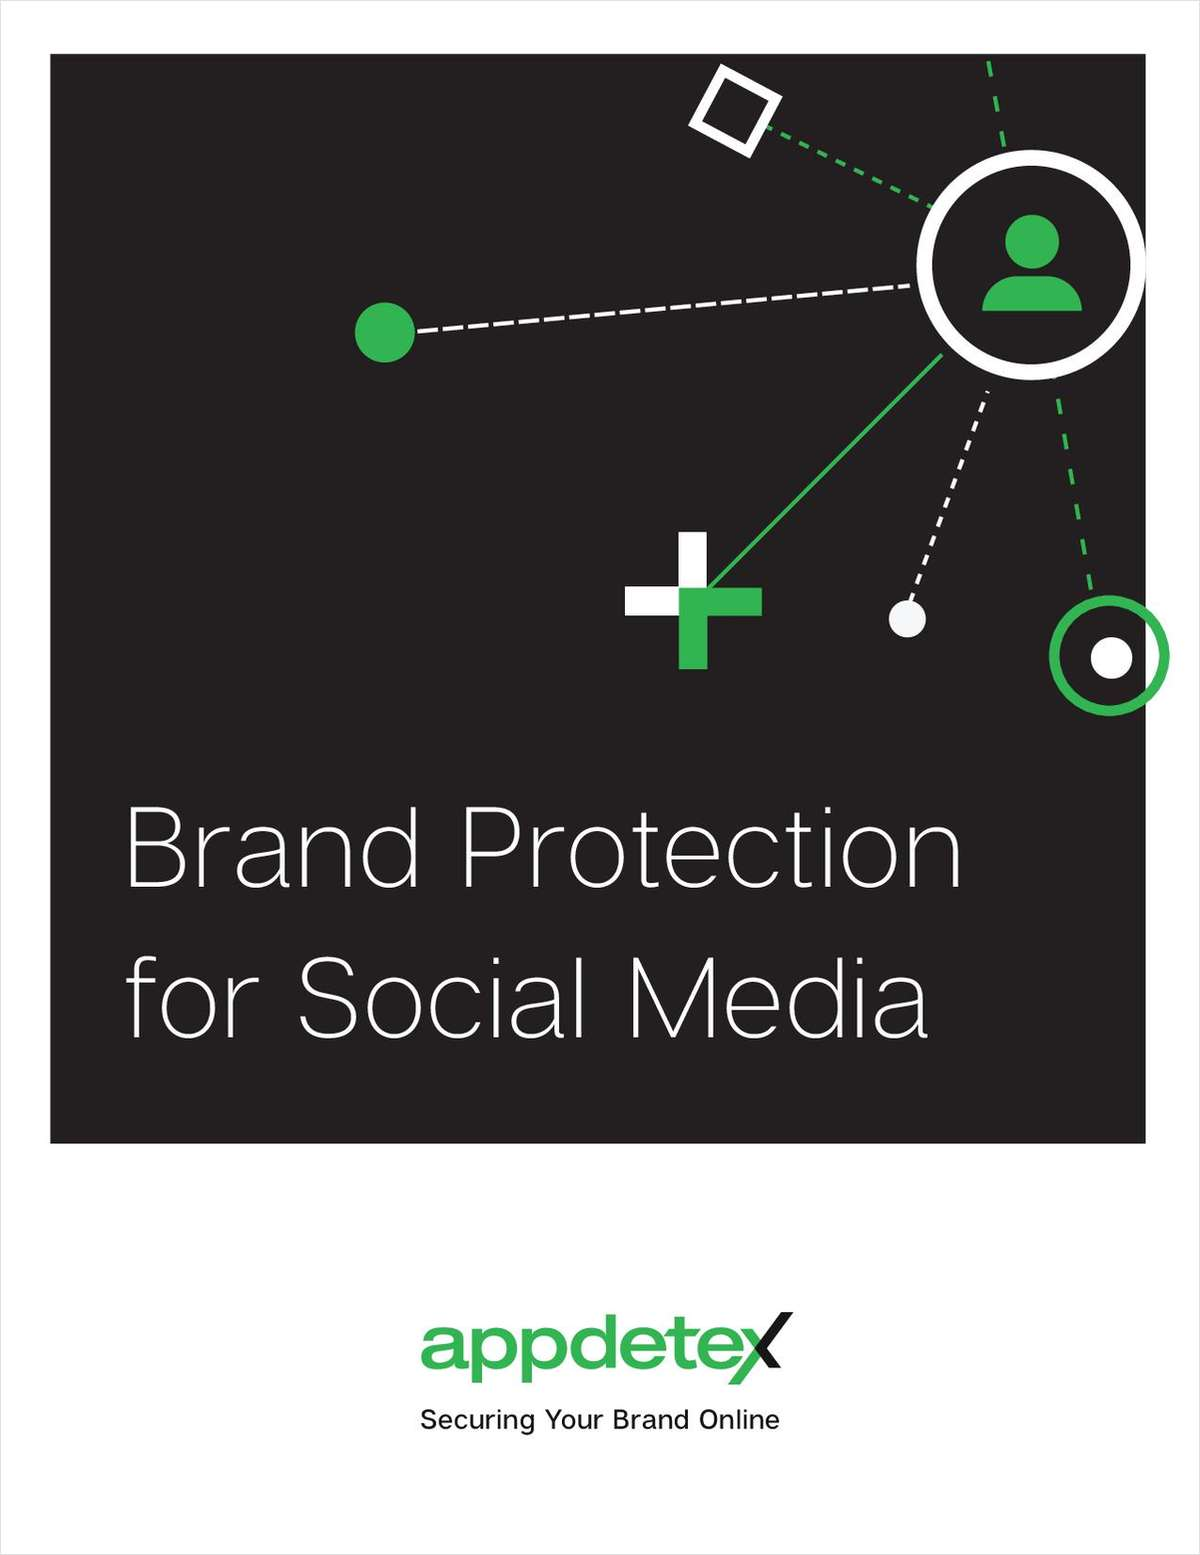 Brand Protection for Social Media